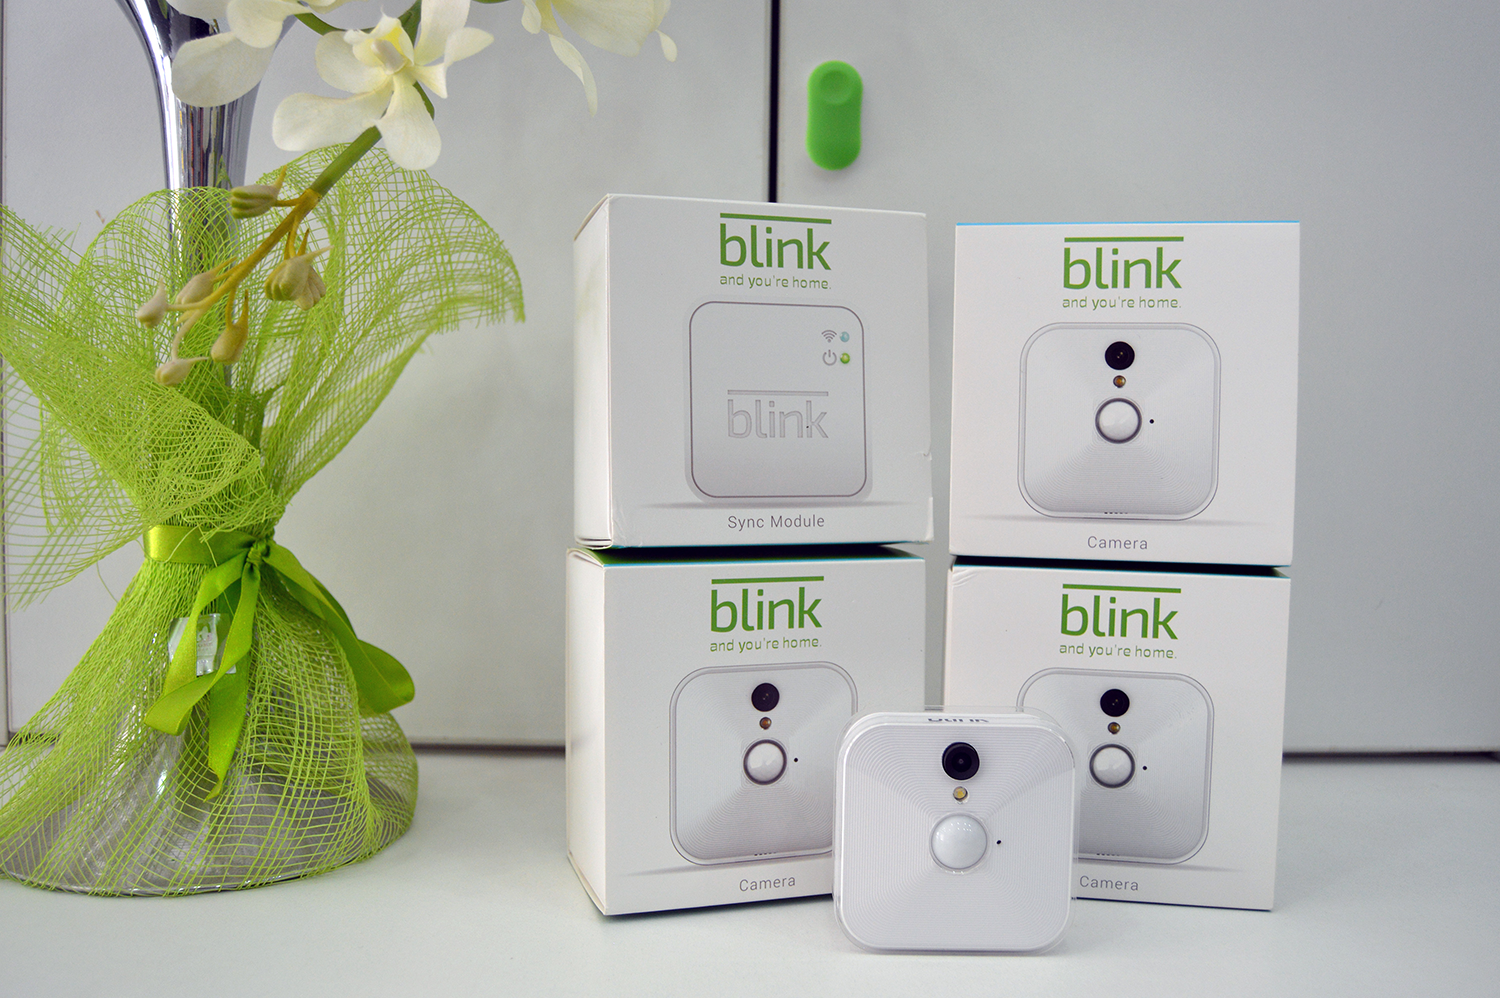 blink home security camera review: an interesting